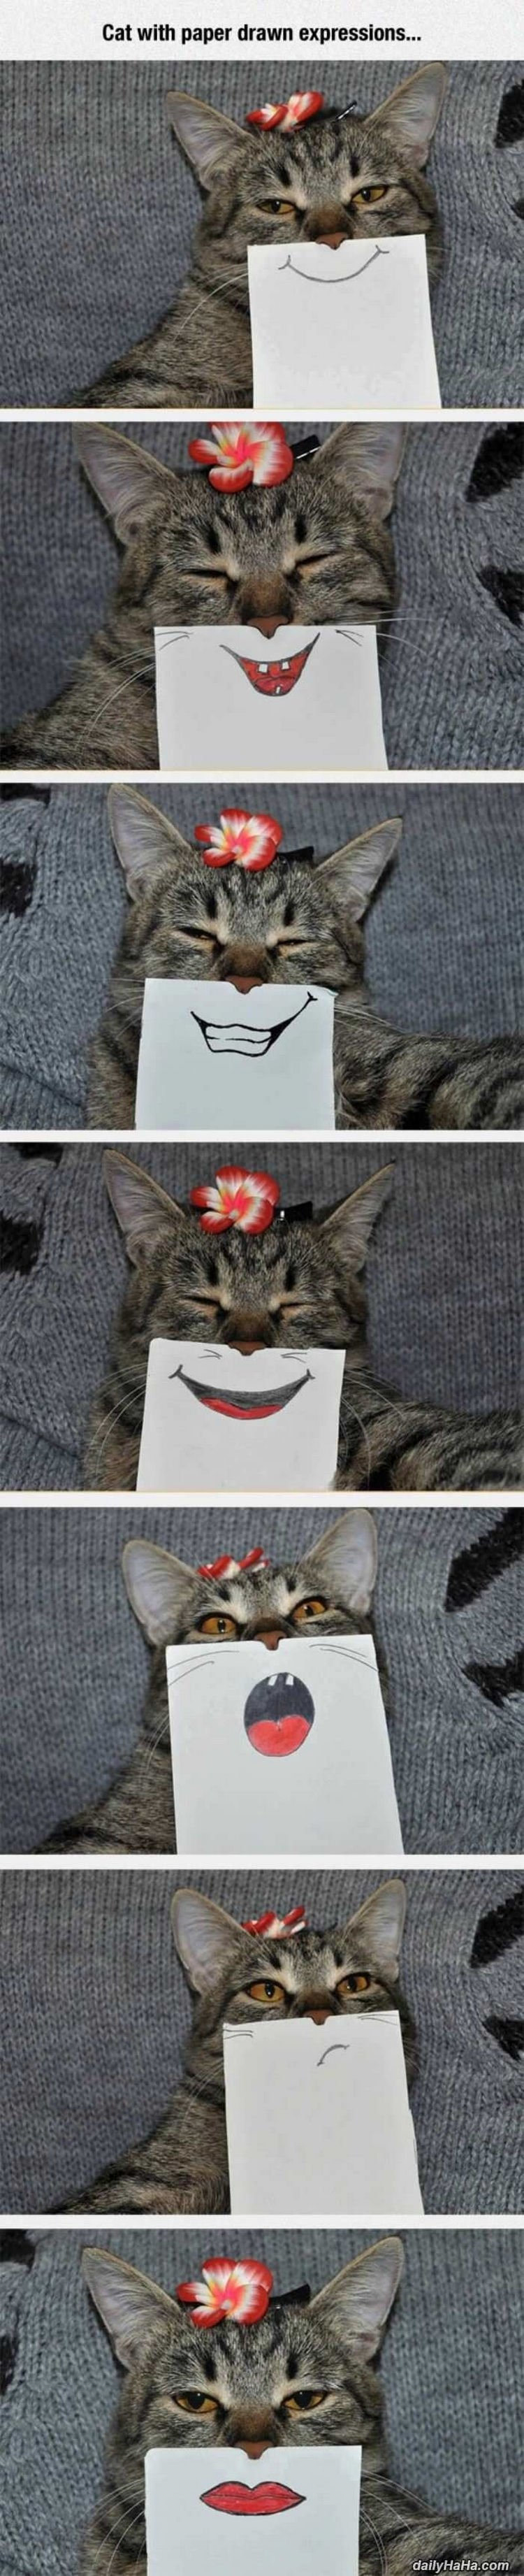 44 Incredibly Funny Pictures That Will Make You Smile - Cats are so funny with drawn expressions.